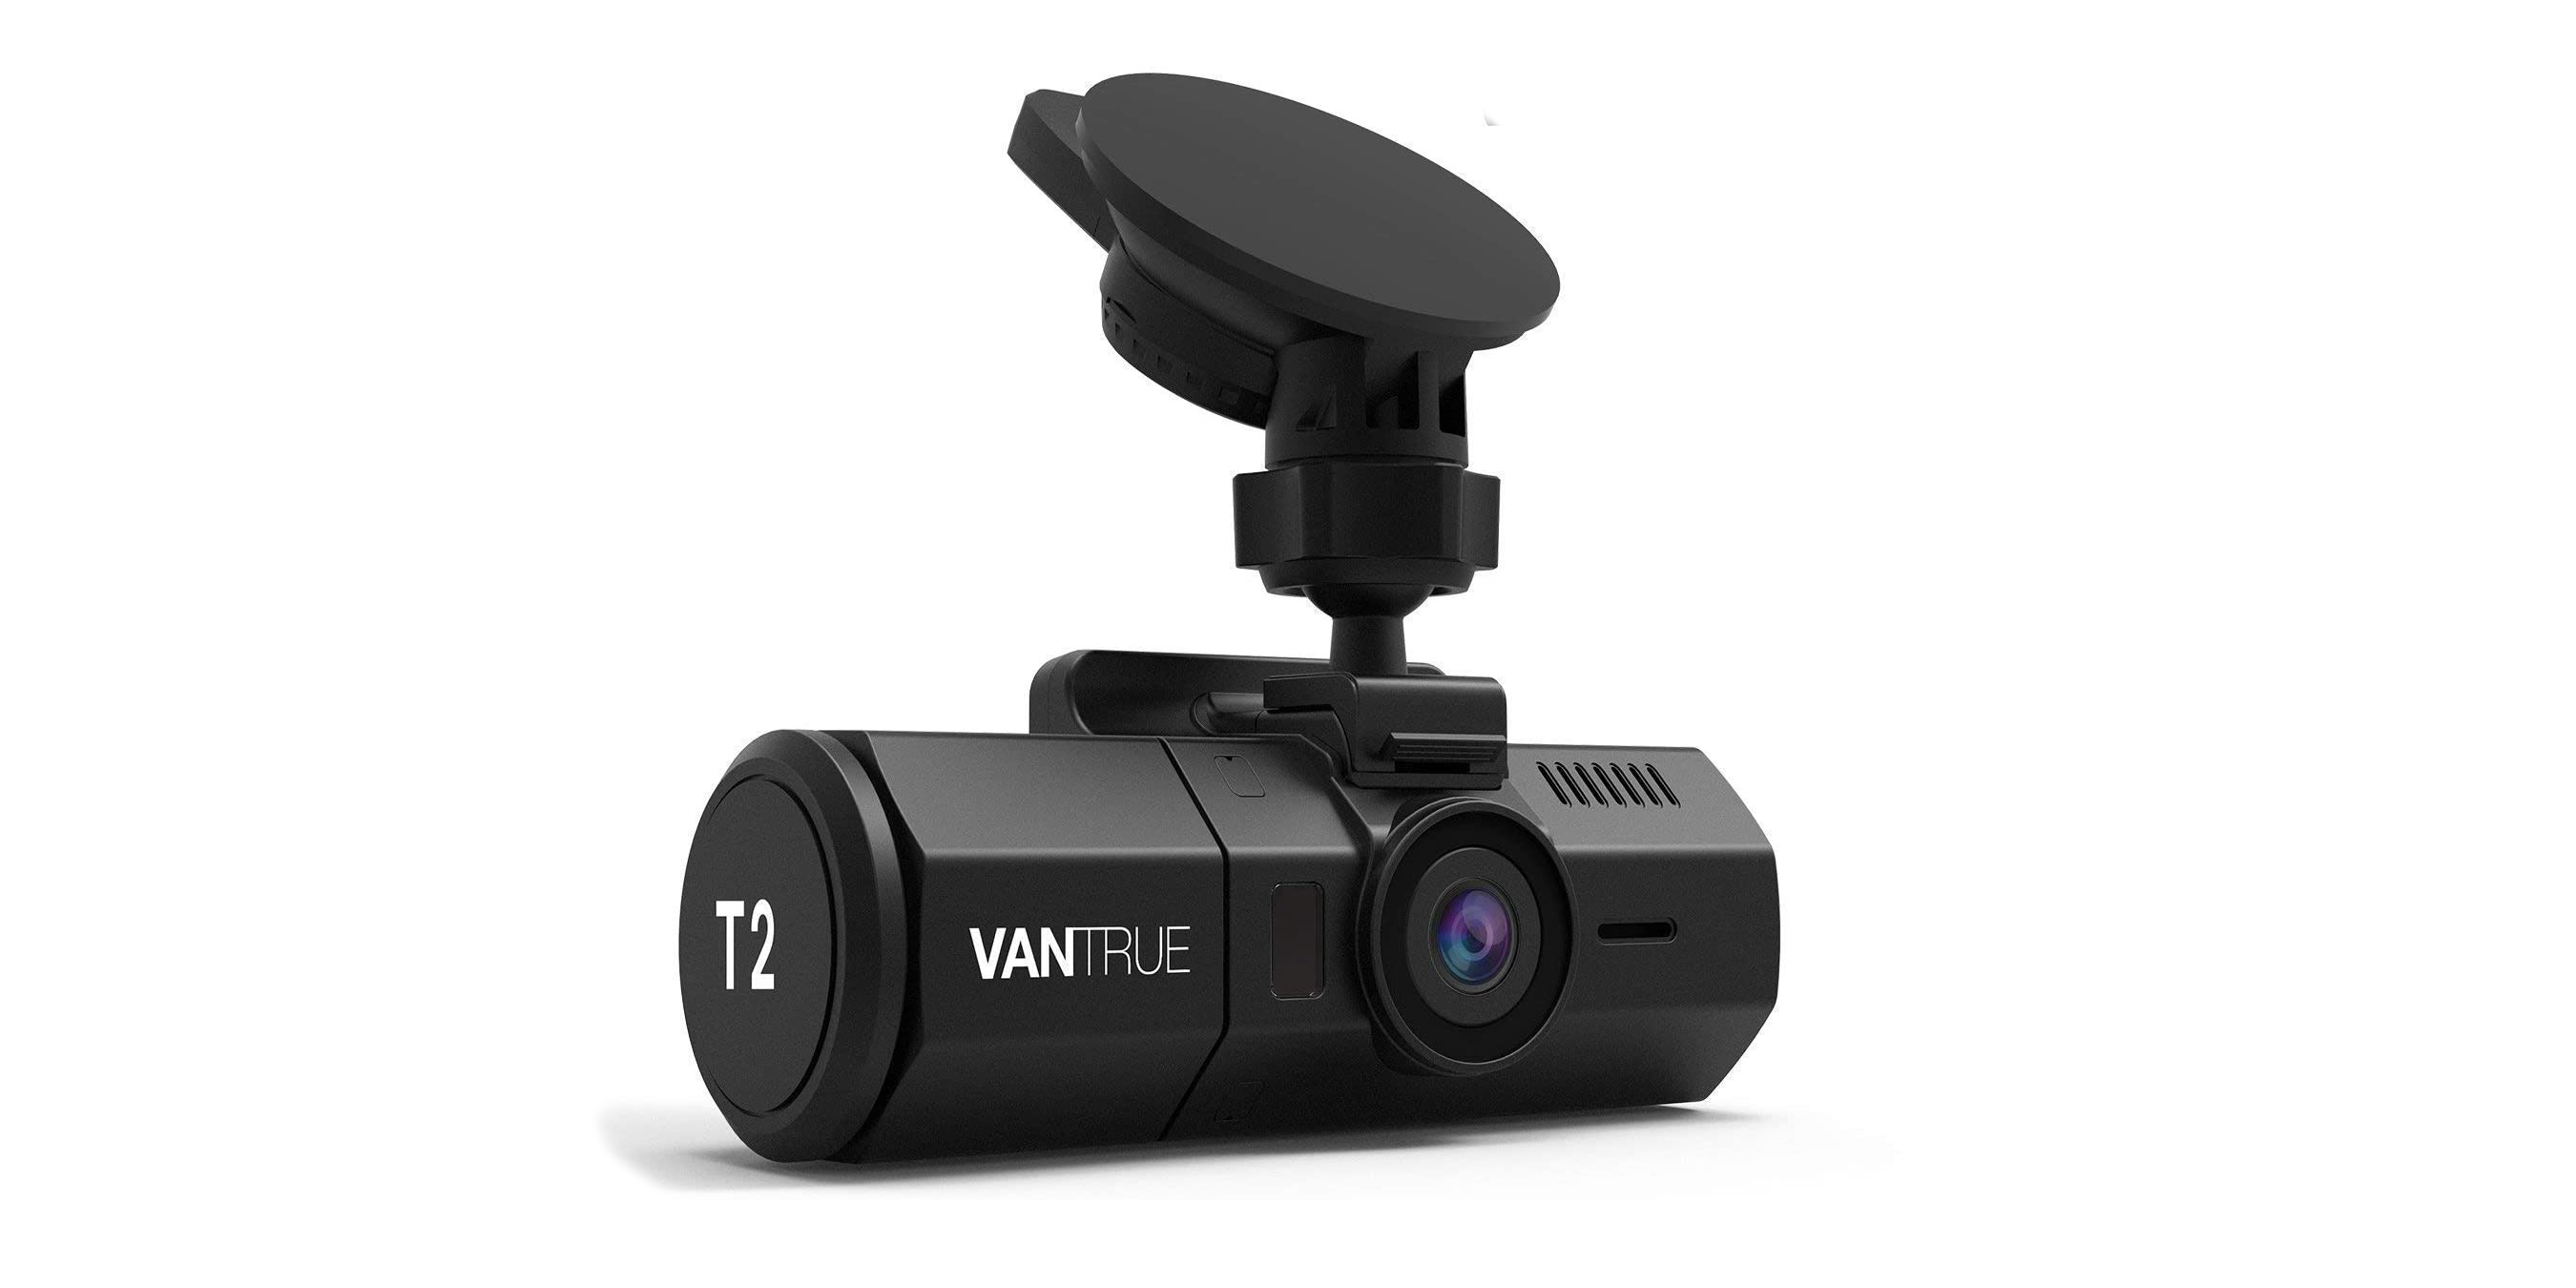 Outfit your ride with a Vantrue dash cam, now up to 35% off from $52